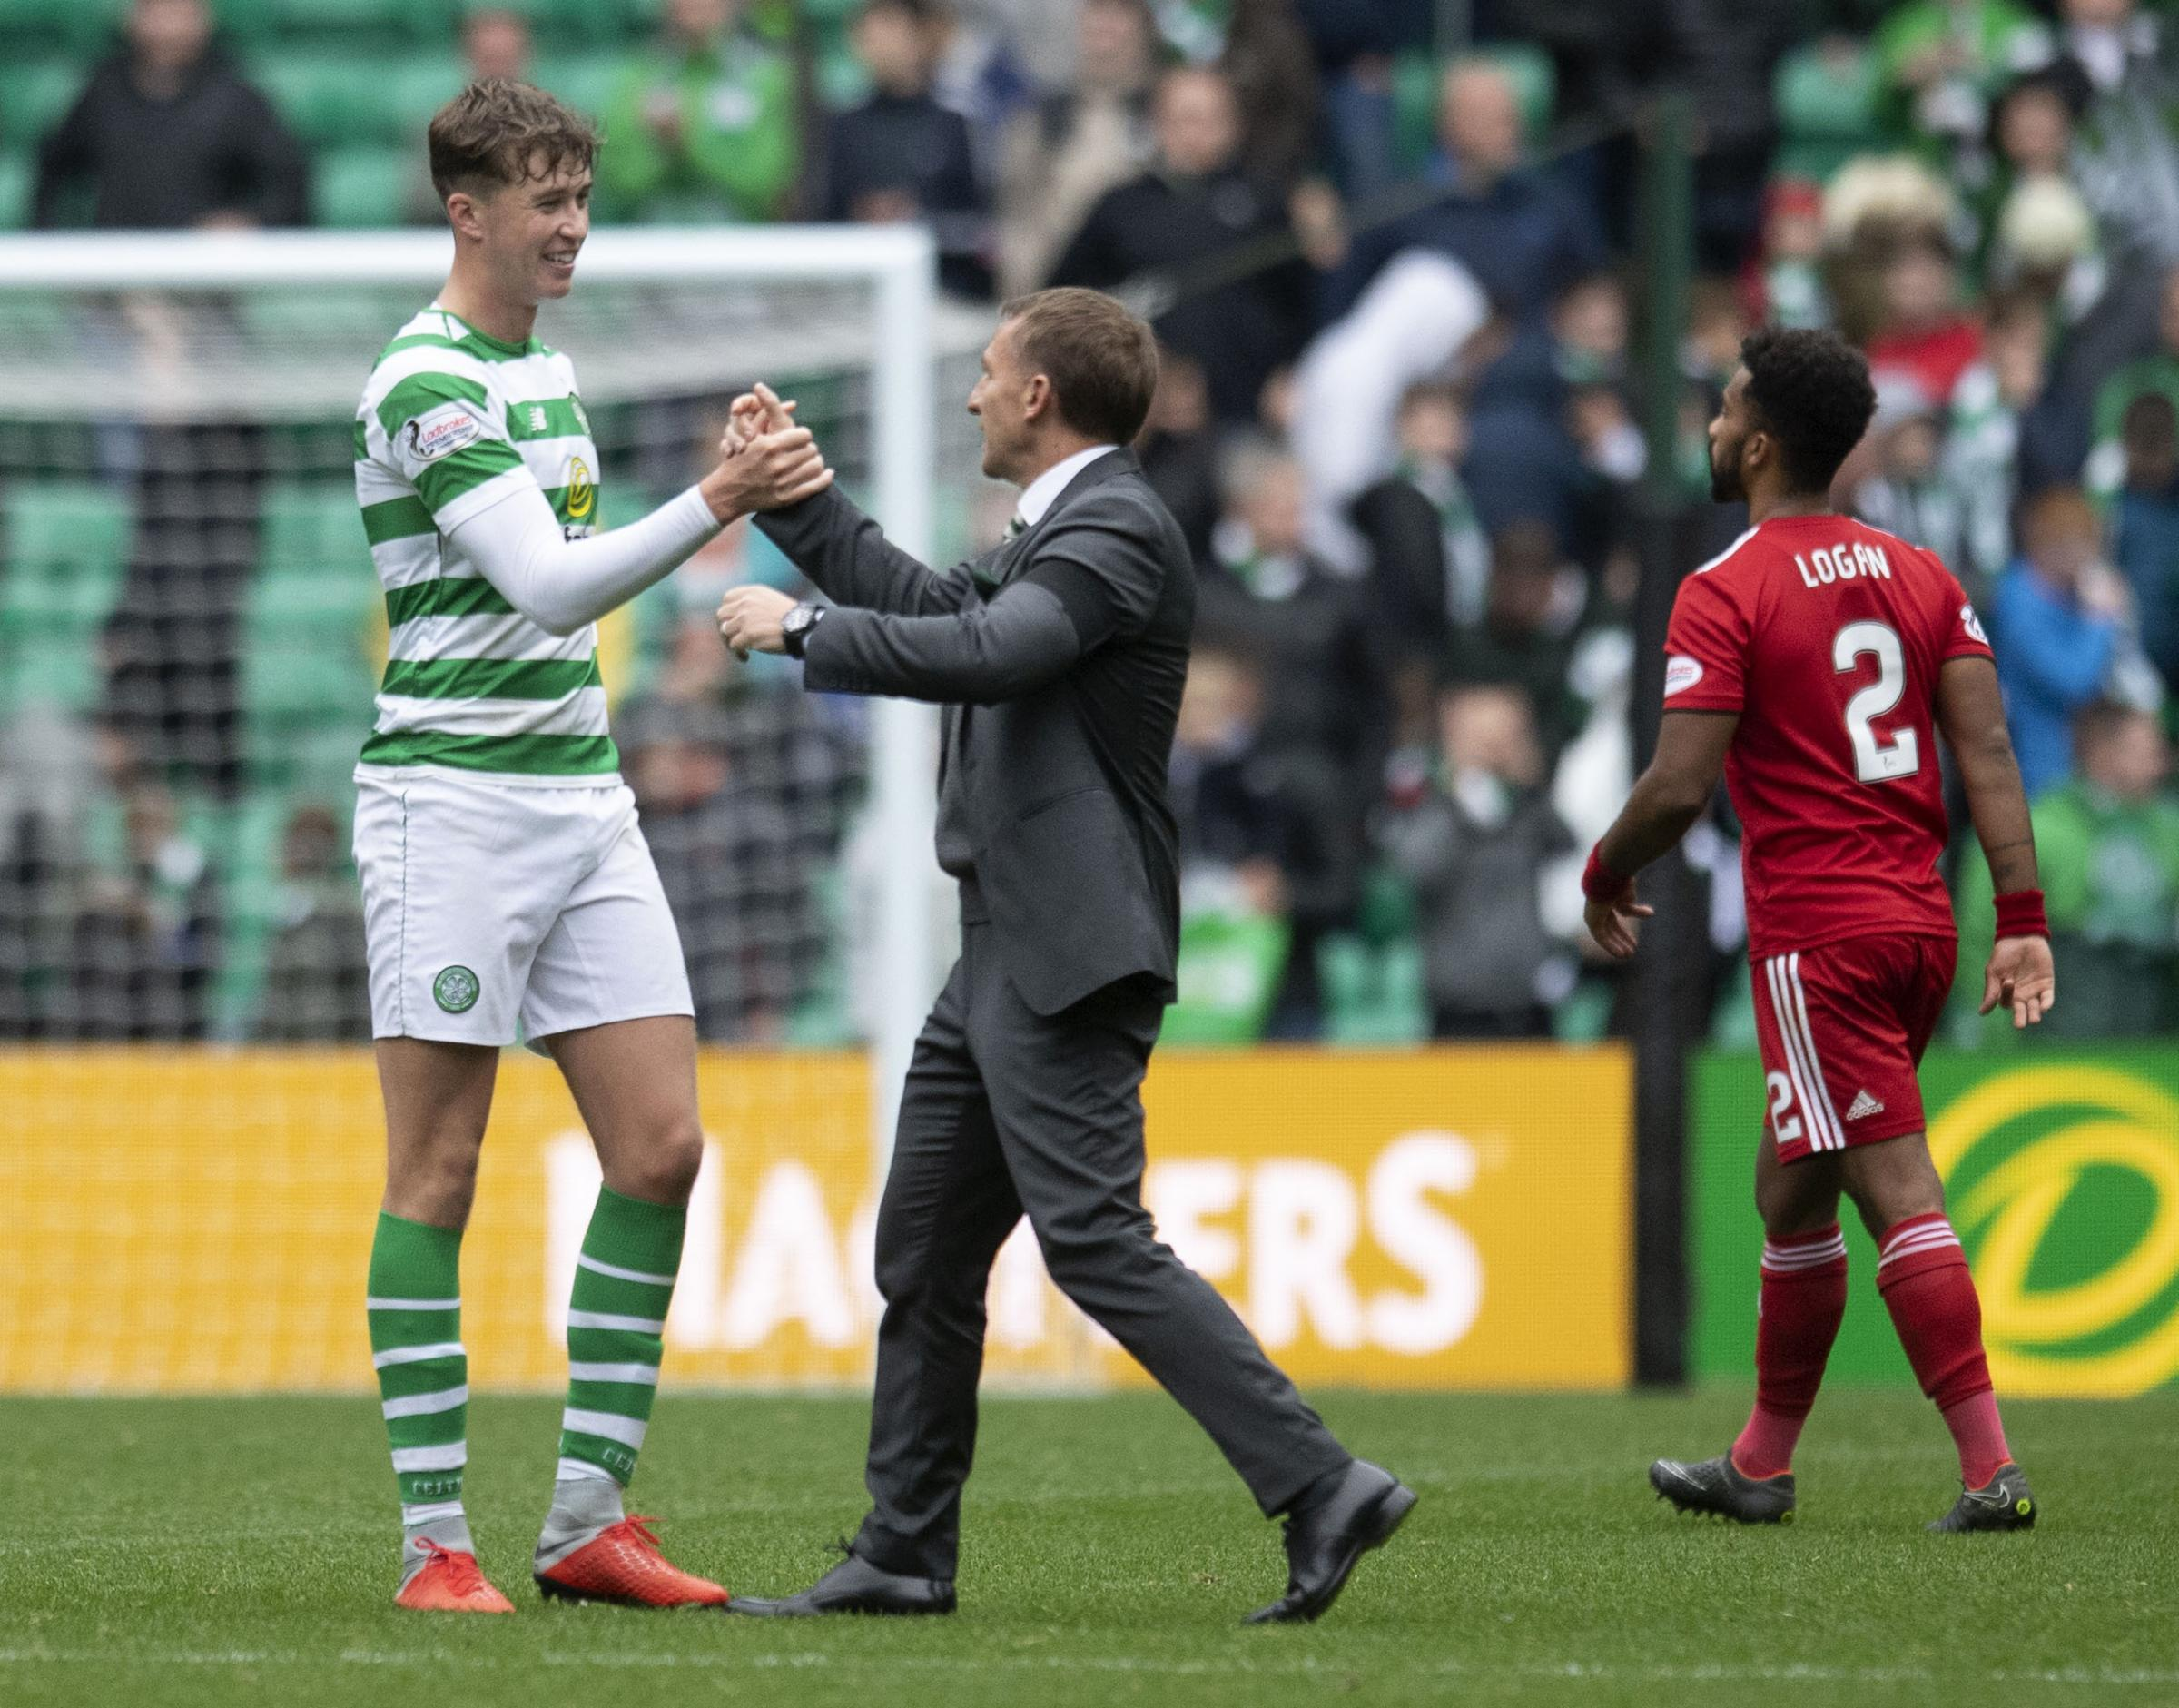 29/09/18 LADBROKES PREMIERSHIP . CELTIC v ABERDEEN (1-0). CELTIC PARK - GLASGOW . Celtic manager Brendan Rodgers (right) with Jack Hendry.